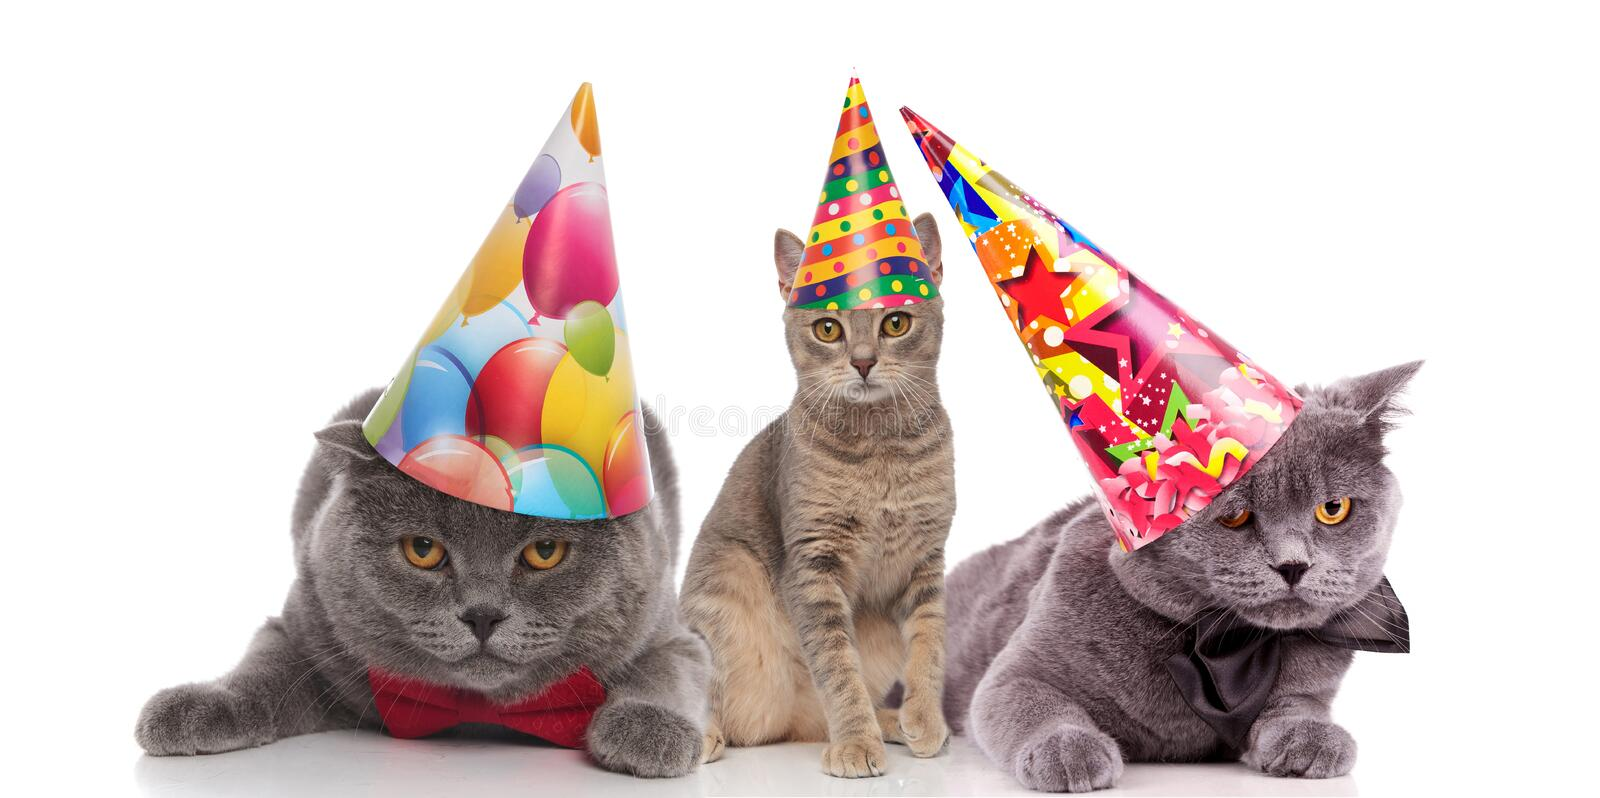 Three funny birthday cats with colorful caps looking bored royalty free stock image